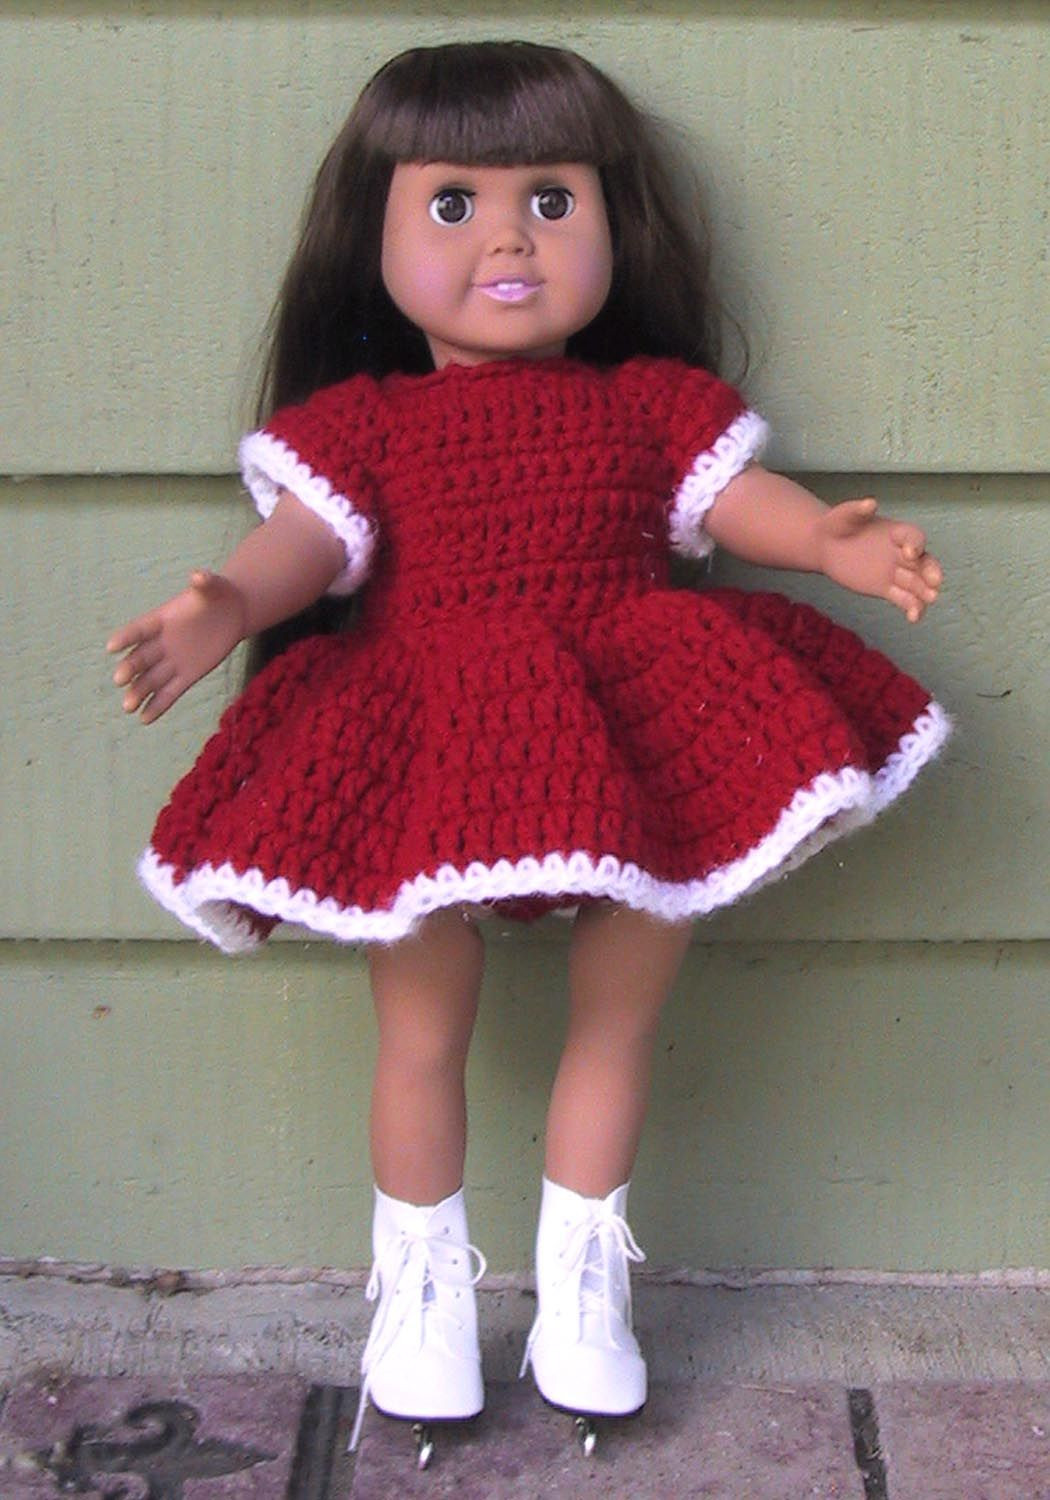 Crochet Doll Clothes Awesome American Girl Dolls and 18 Inch Doll Clothes Free Crochet Of Fresh 48 Images Crochet Doll Clothes